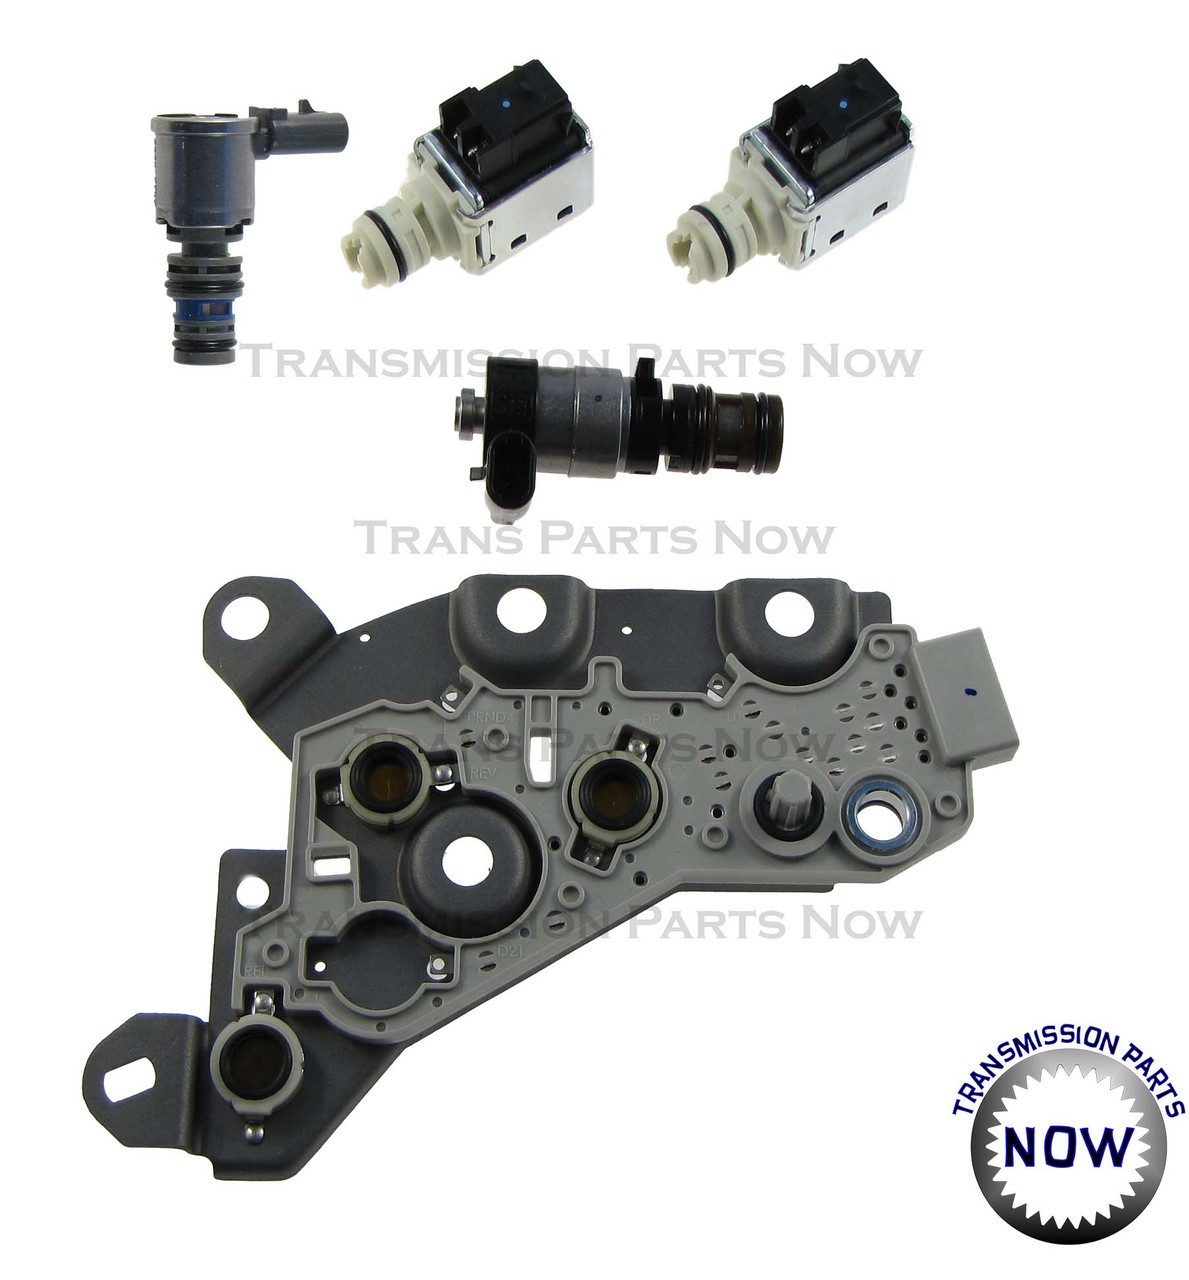 40T405E SHIFT SOLENOID REPLACEMENT